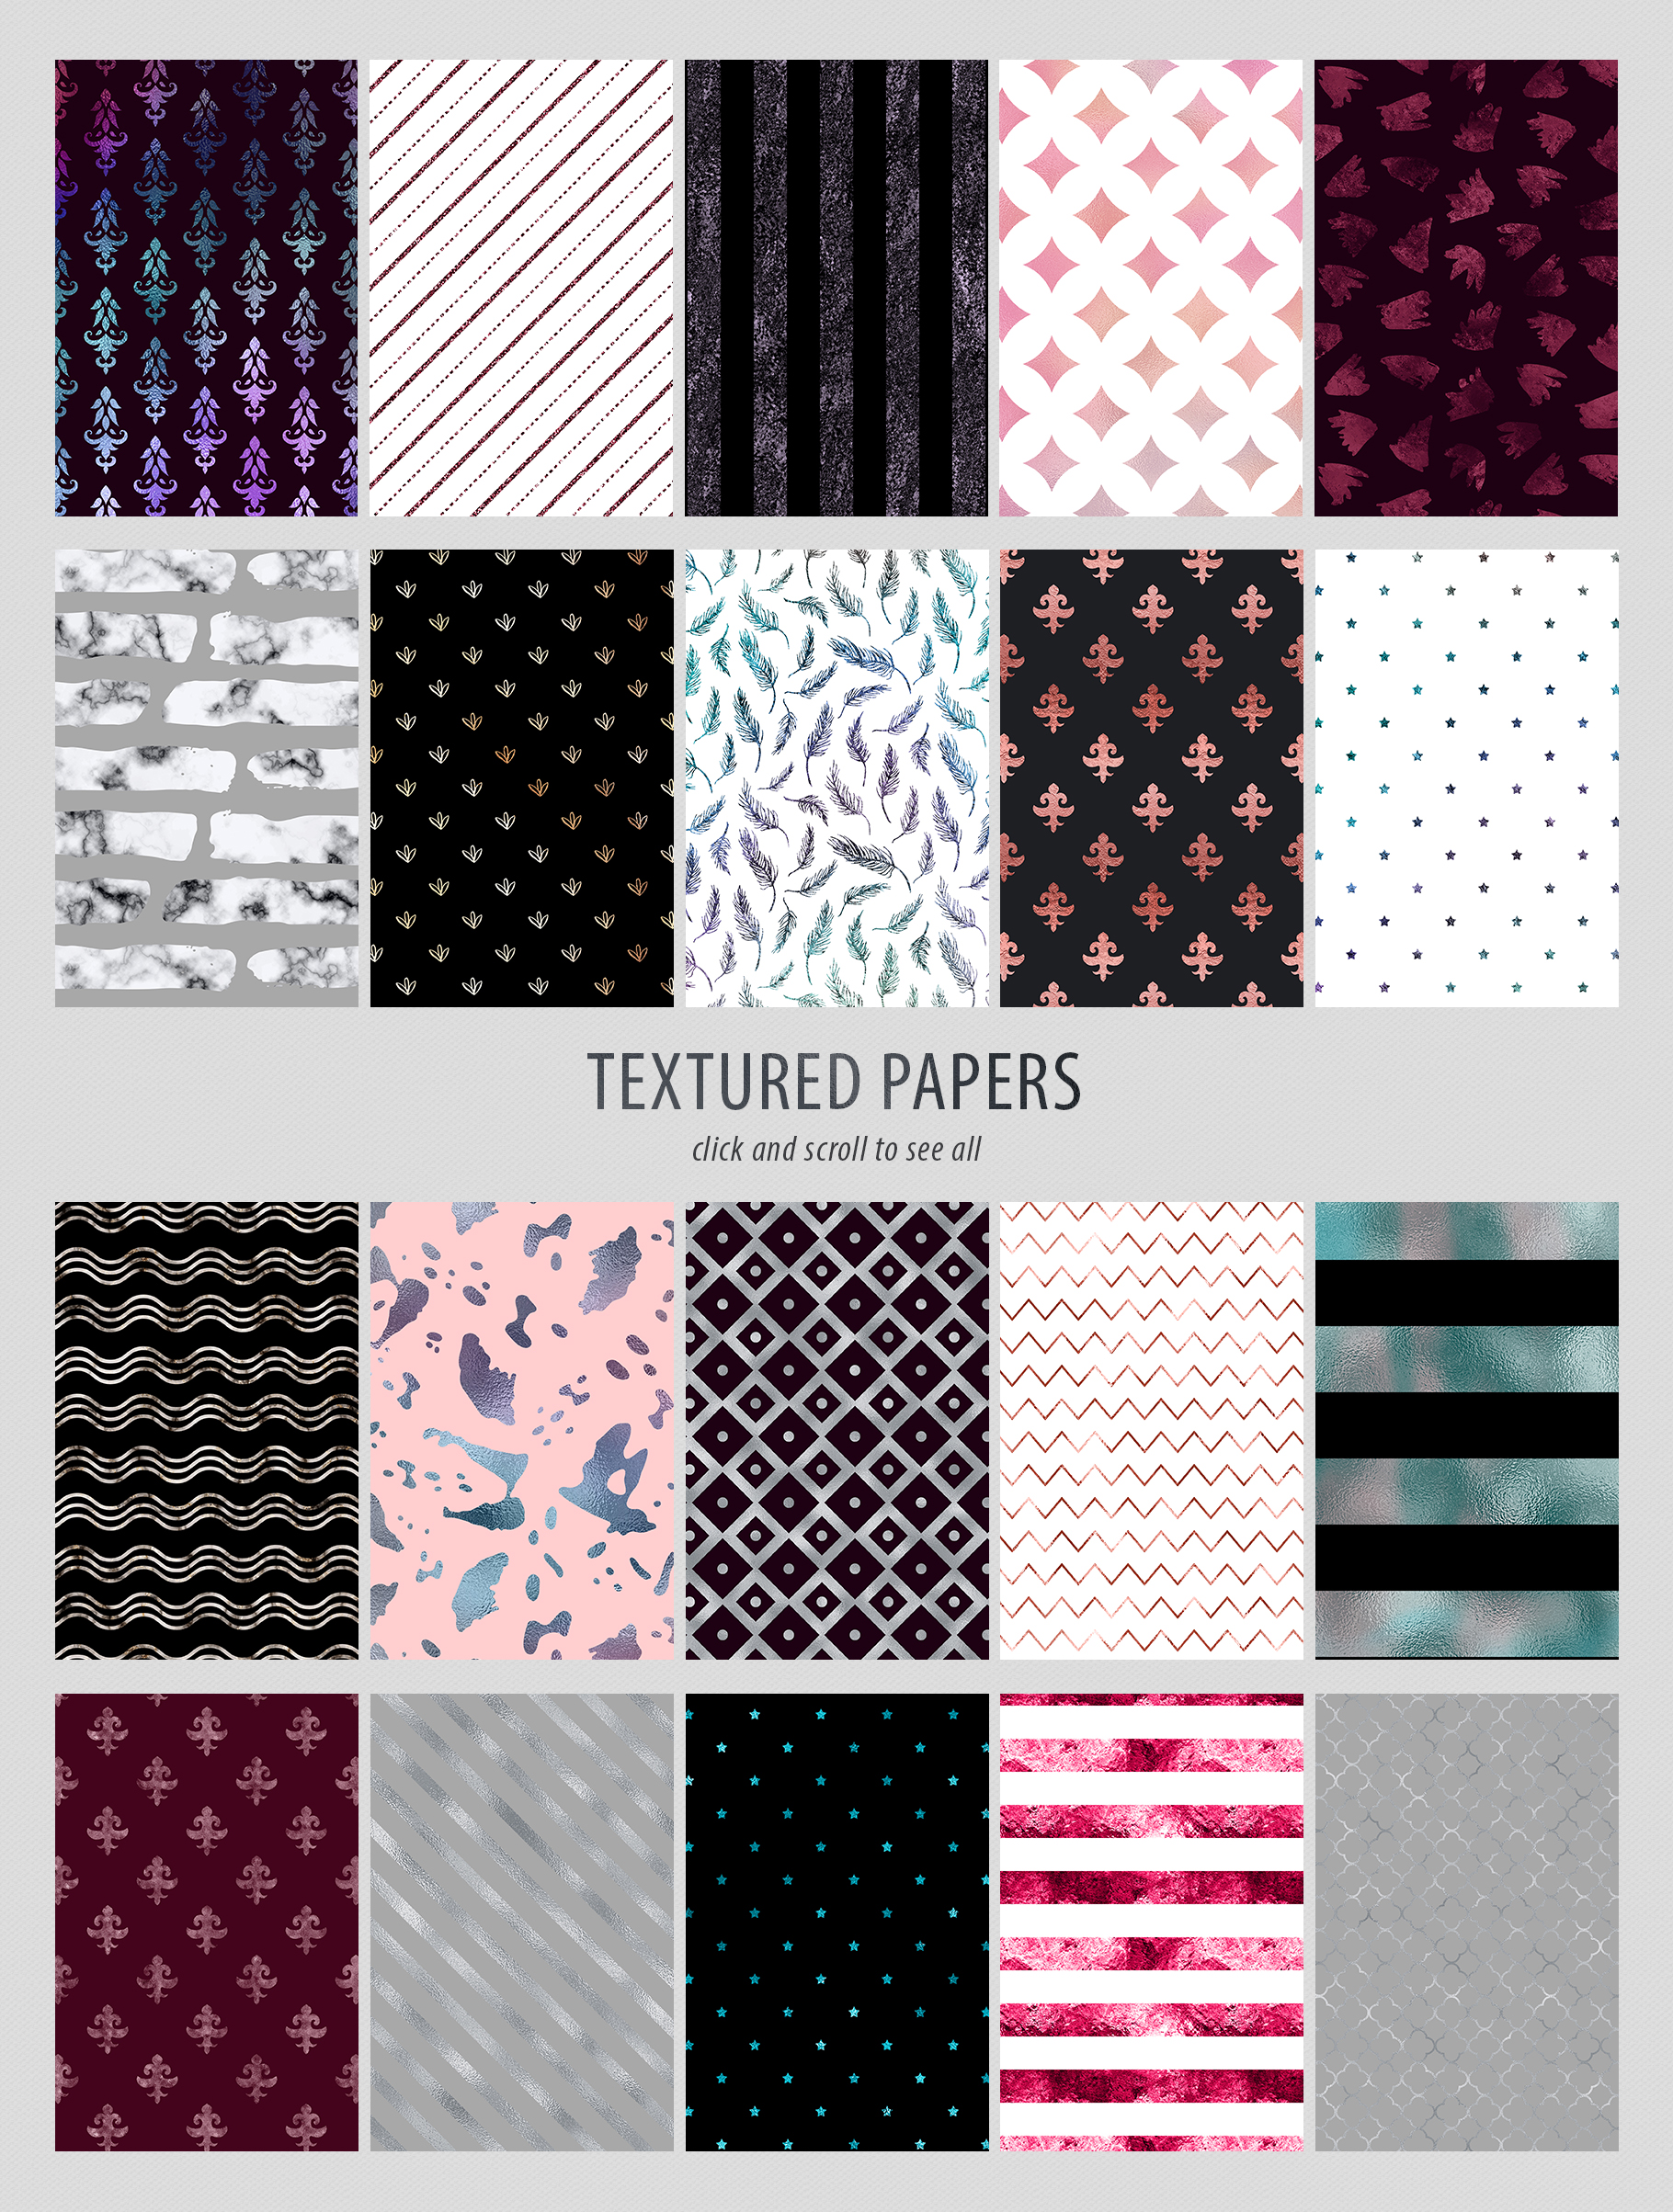 Luxe - 200 Textures and Patterns - Foil, Glitter, Marble example image 19